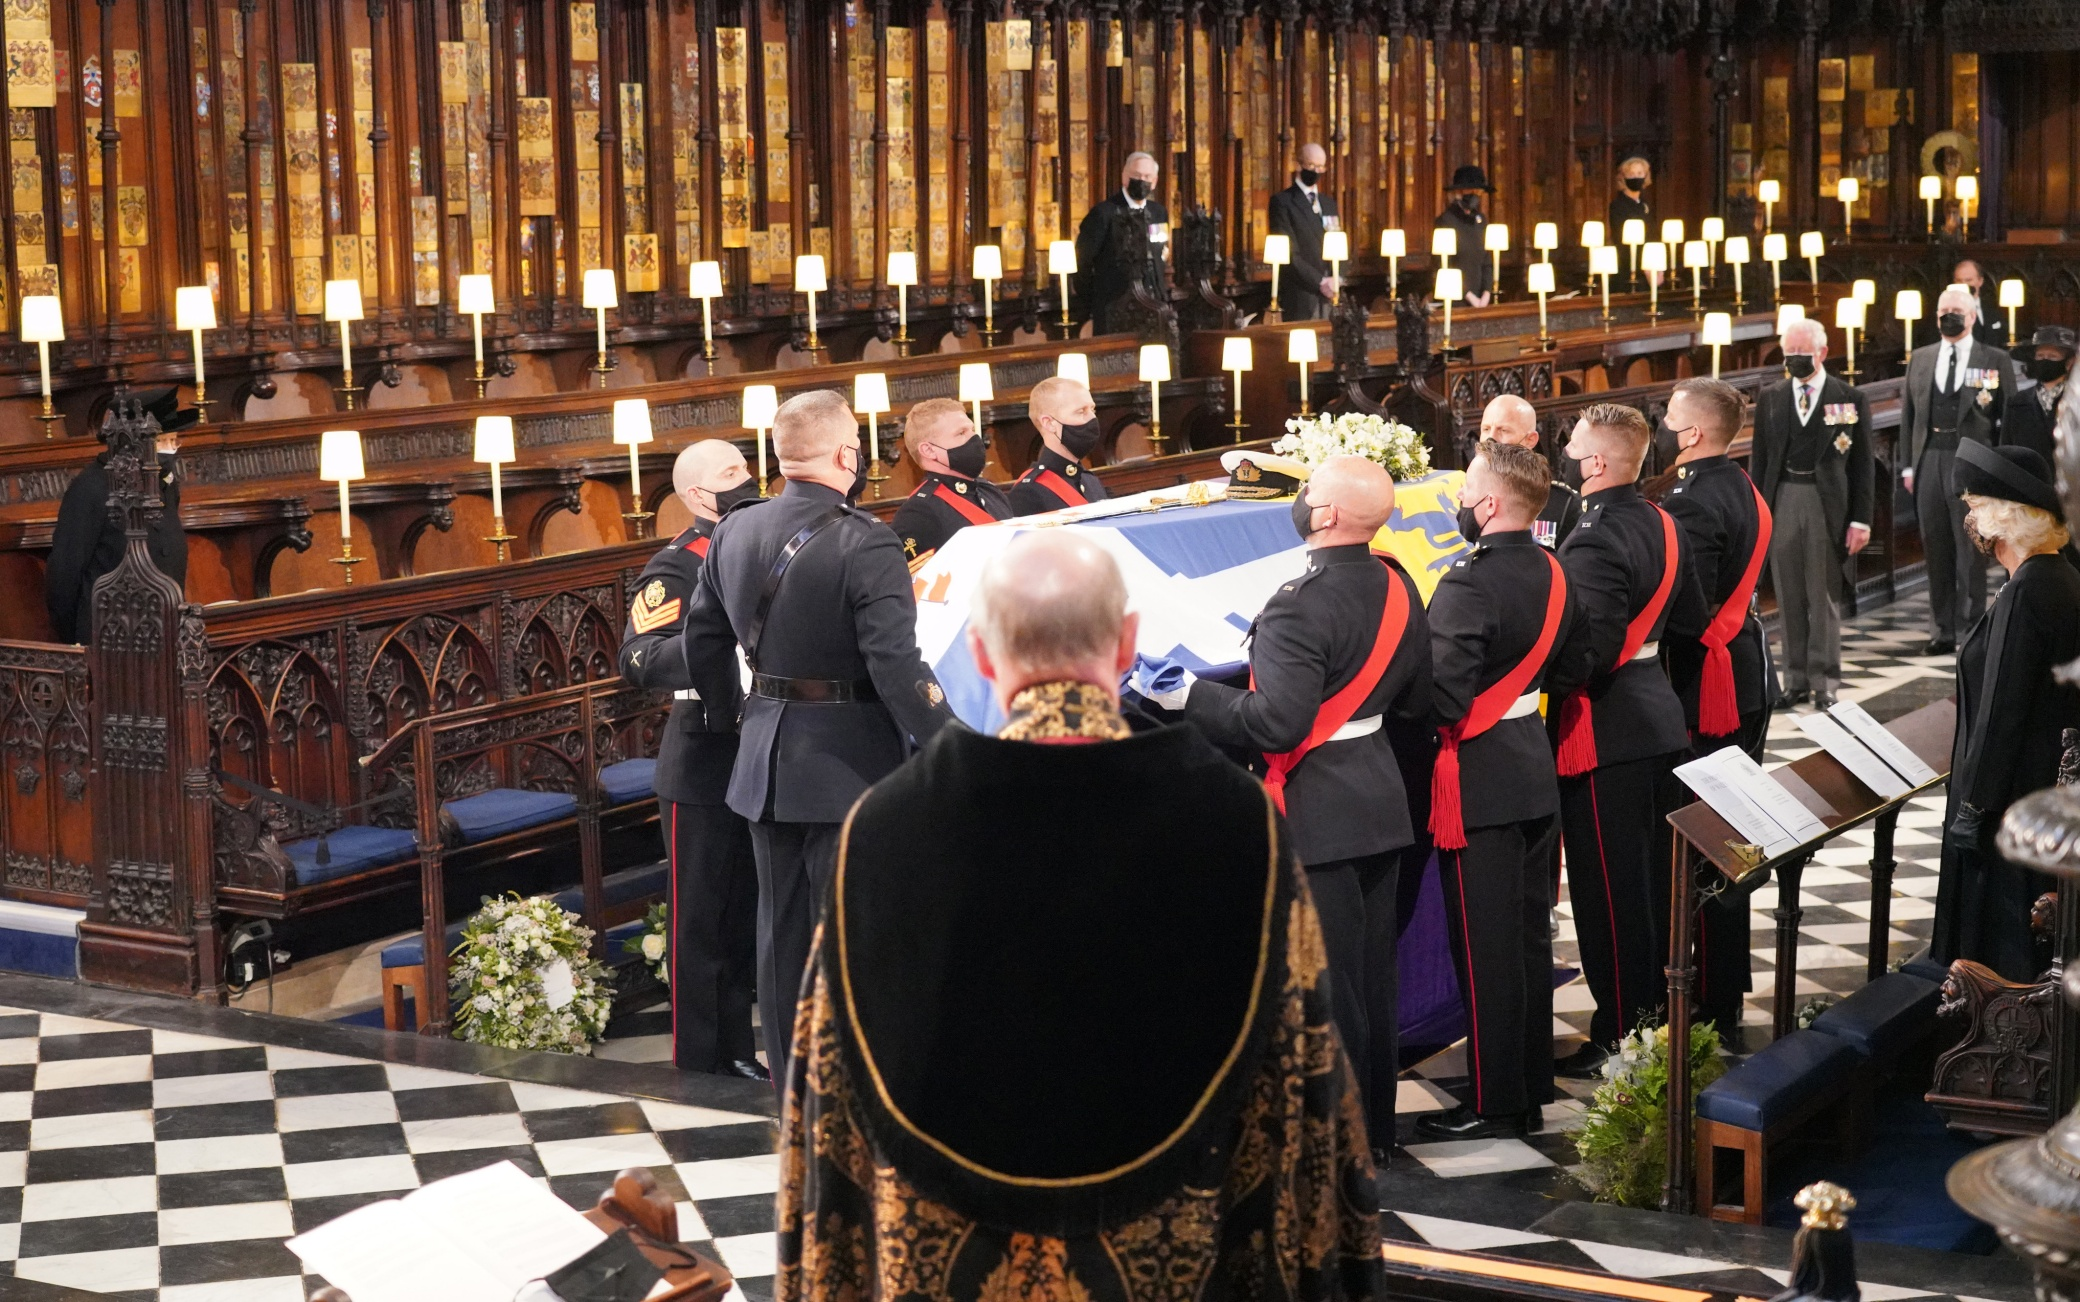 Queen Elizabeth II (left) watches as pall bearers carry the coffin of the Duke of Edinburgh during his funeral at St George's Chapel, Windsor Castle, Berkshire. Picture date: Saturday April 17, 2021.